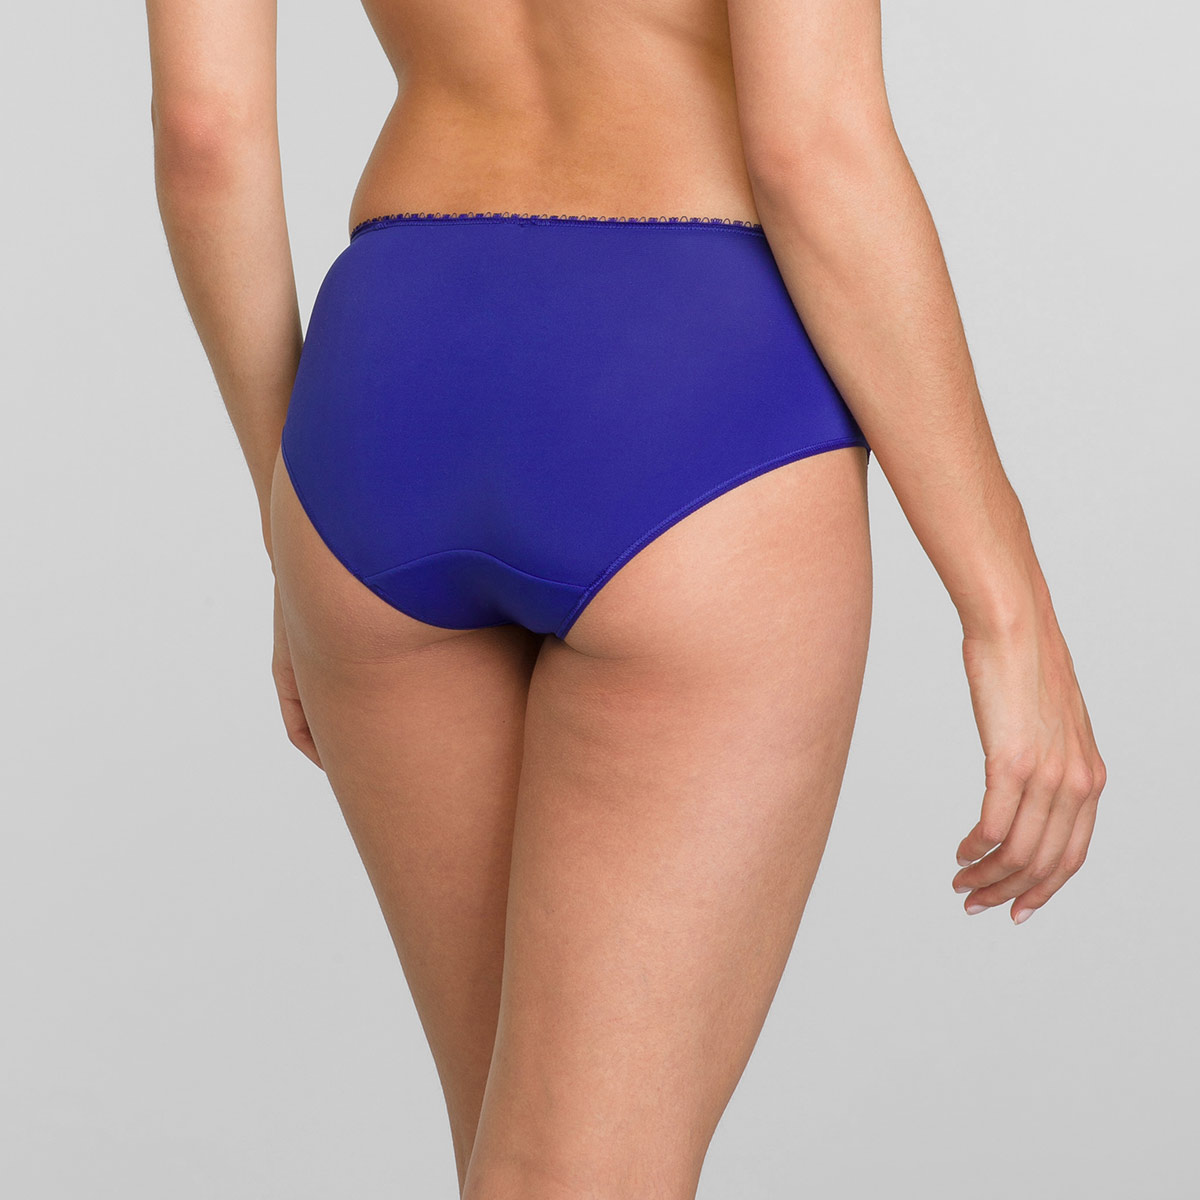 Midi Knickers in Intense Blue Flower Elegance, , PLAYTEX